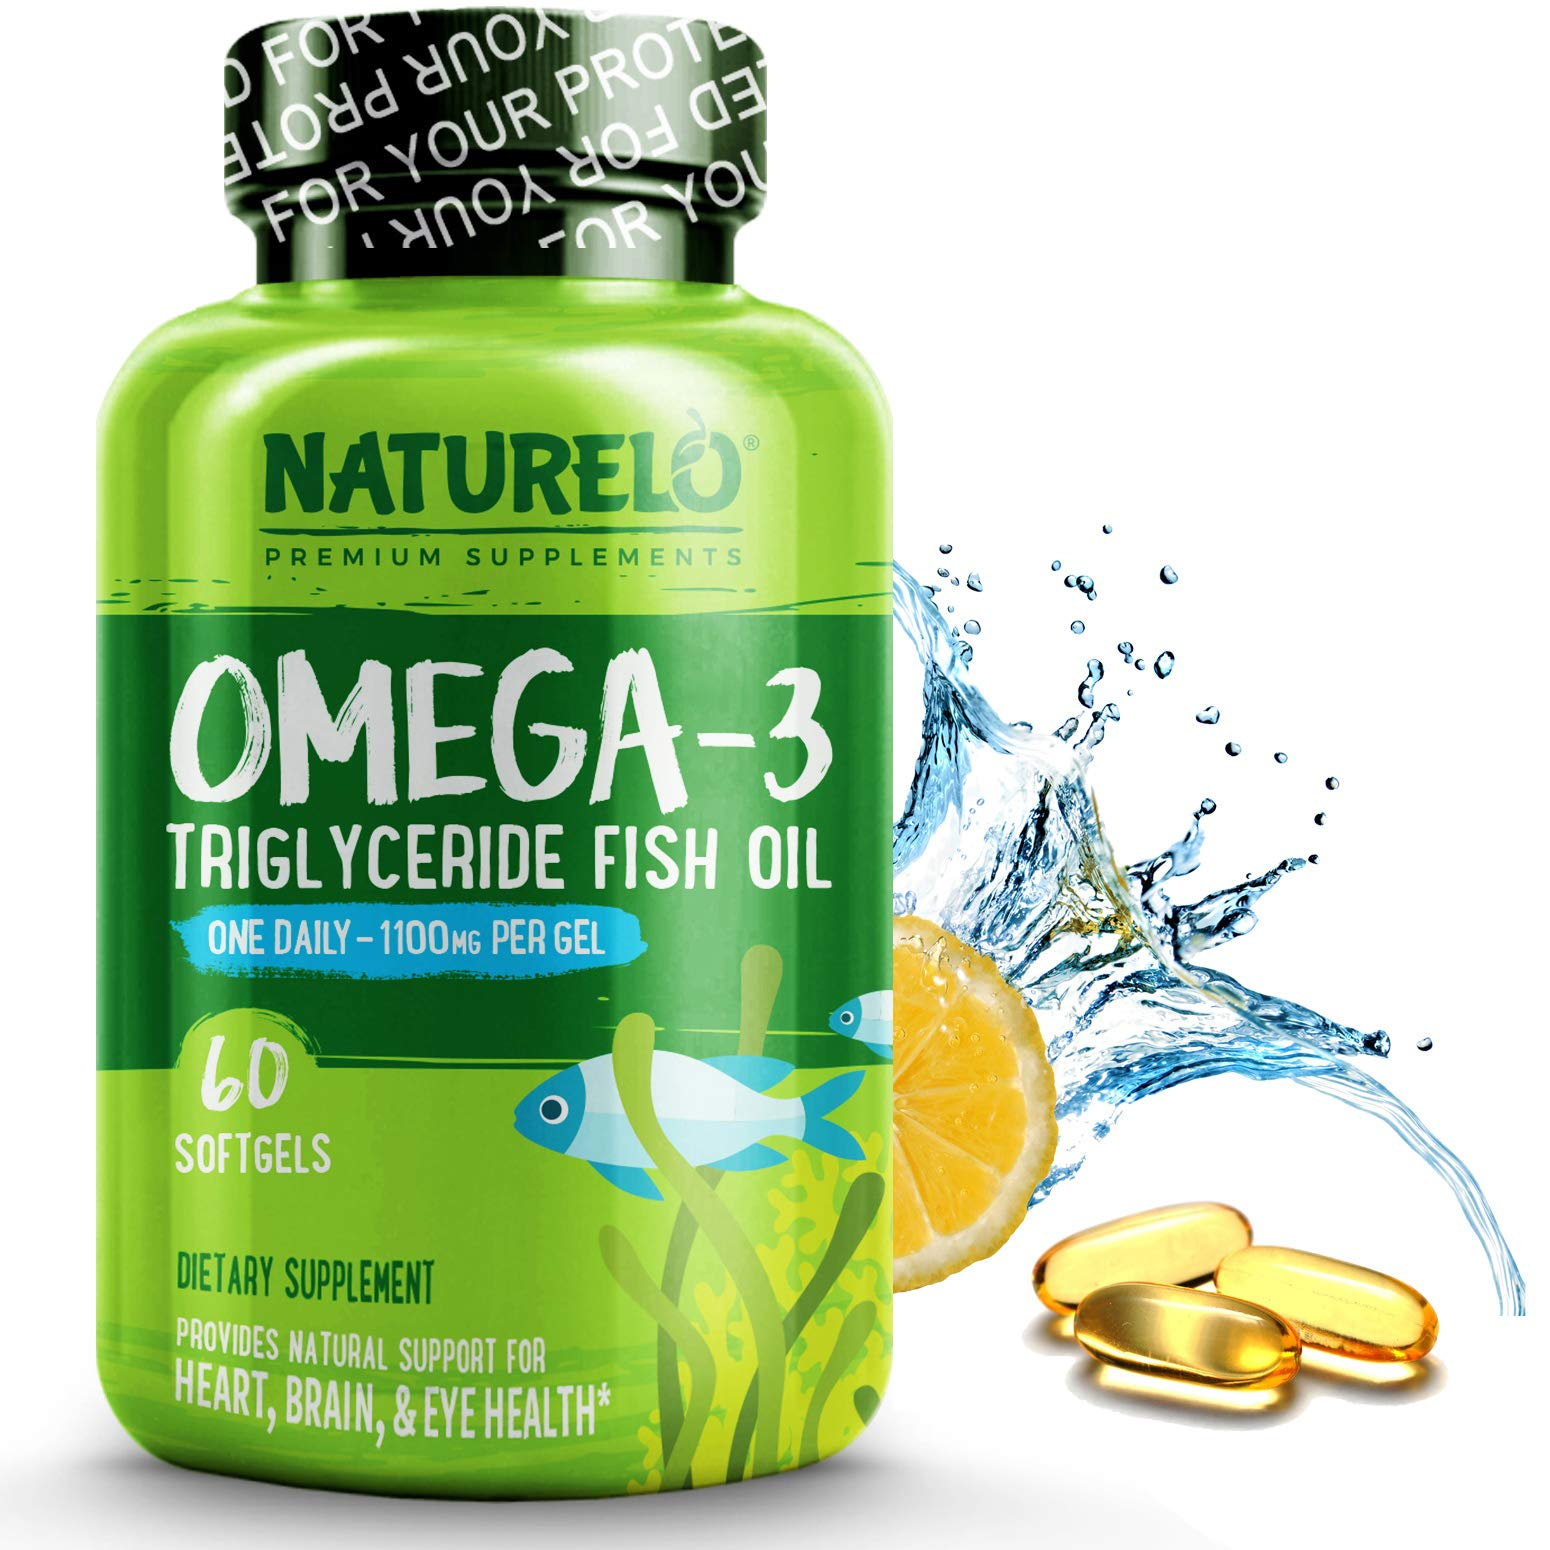 NATURELO Premium Omega-3 Fish Oil - 1100 mg Triglyceride Omega 3 - High Strength DHA EPA Supplement - Best for Brain, Heart, Joint Health - No Burps - Lemon Flavor - 60 Softgels | 2 Month Supply